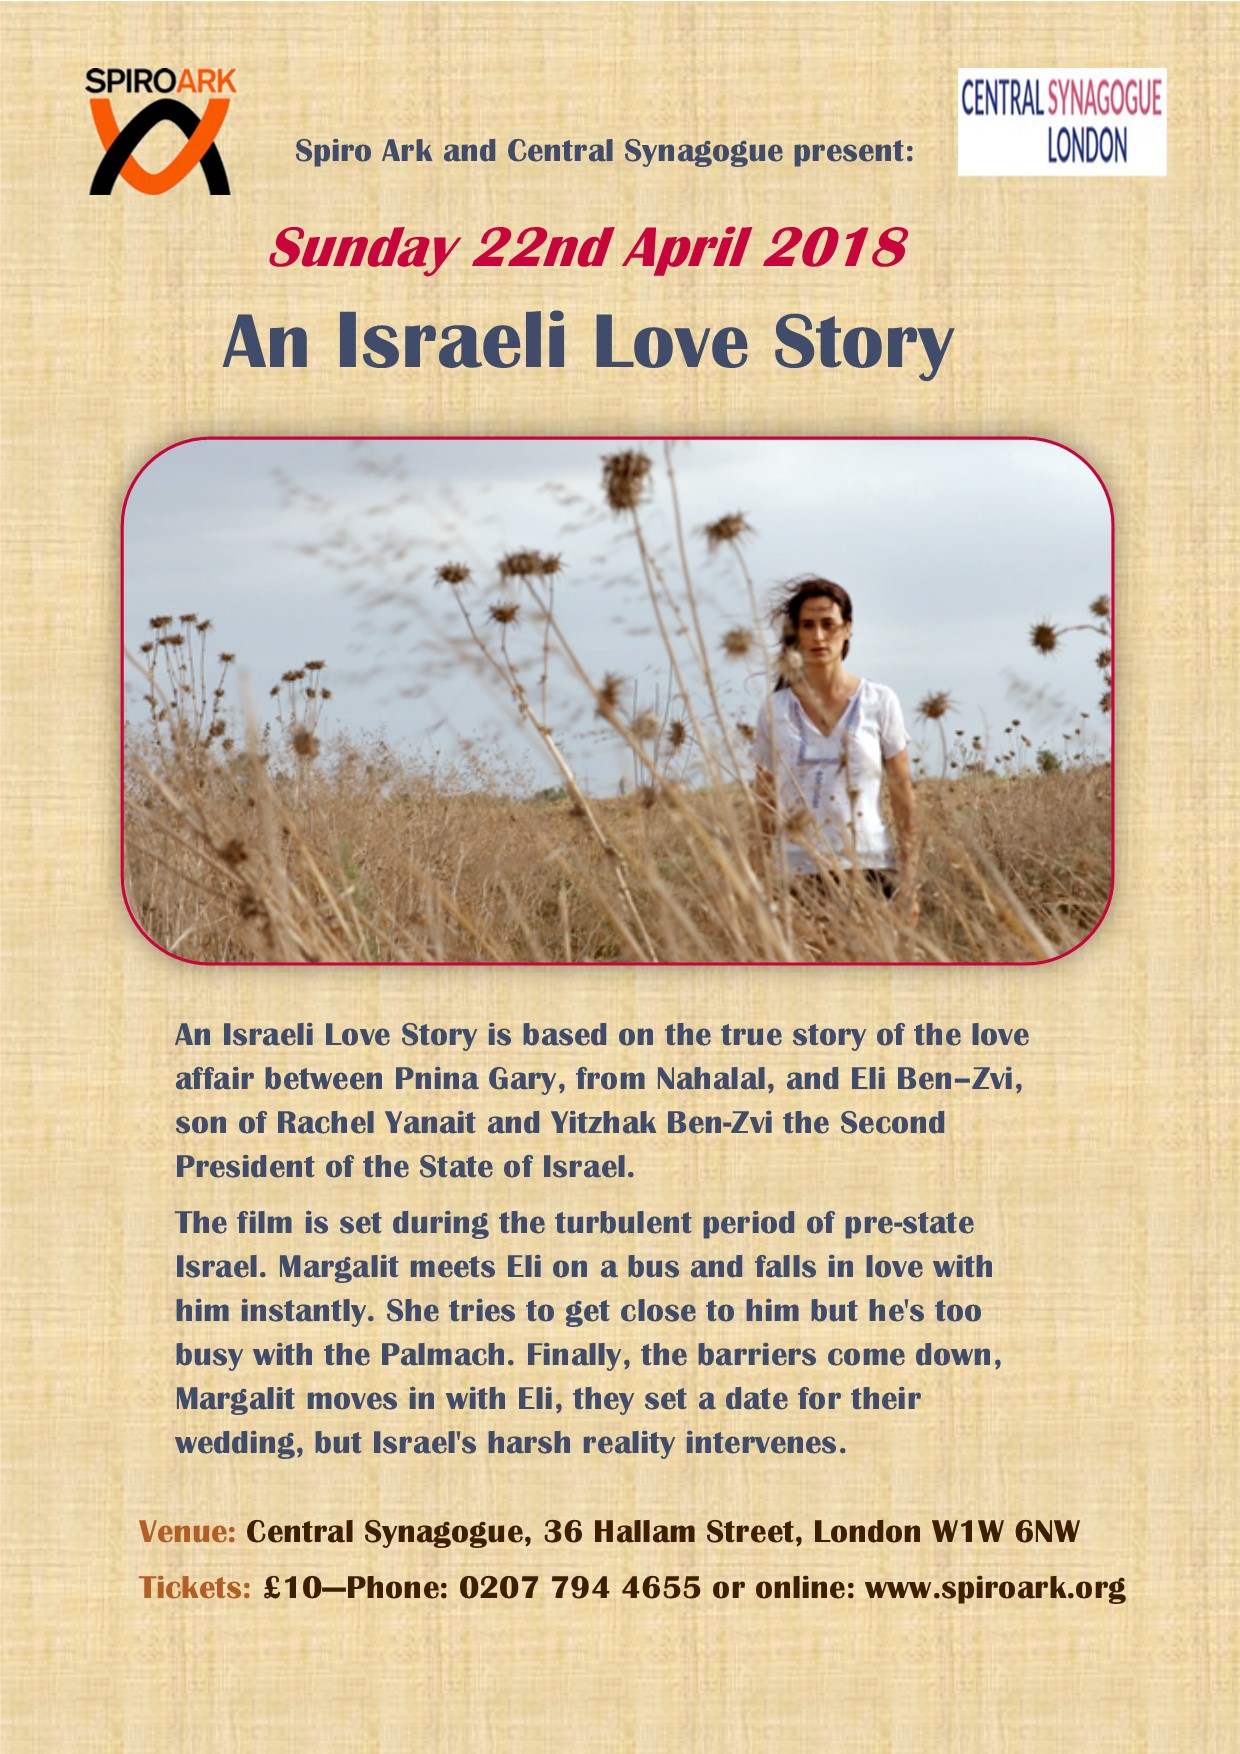 Film screening and discussion: An Israeli Love Story